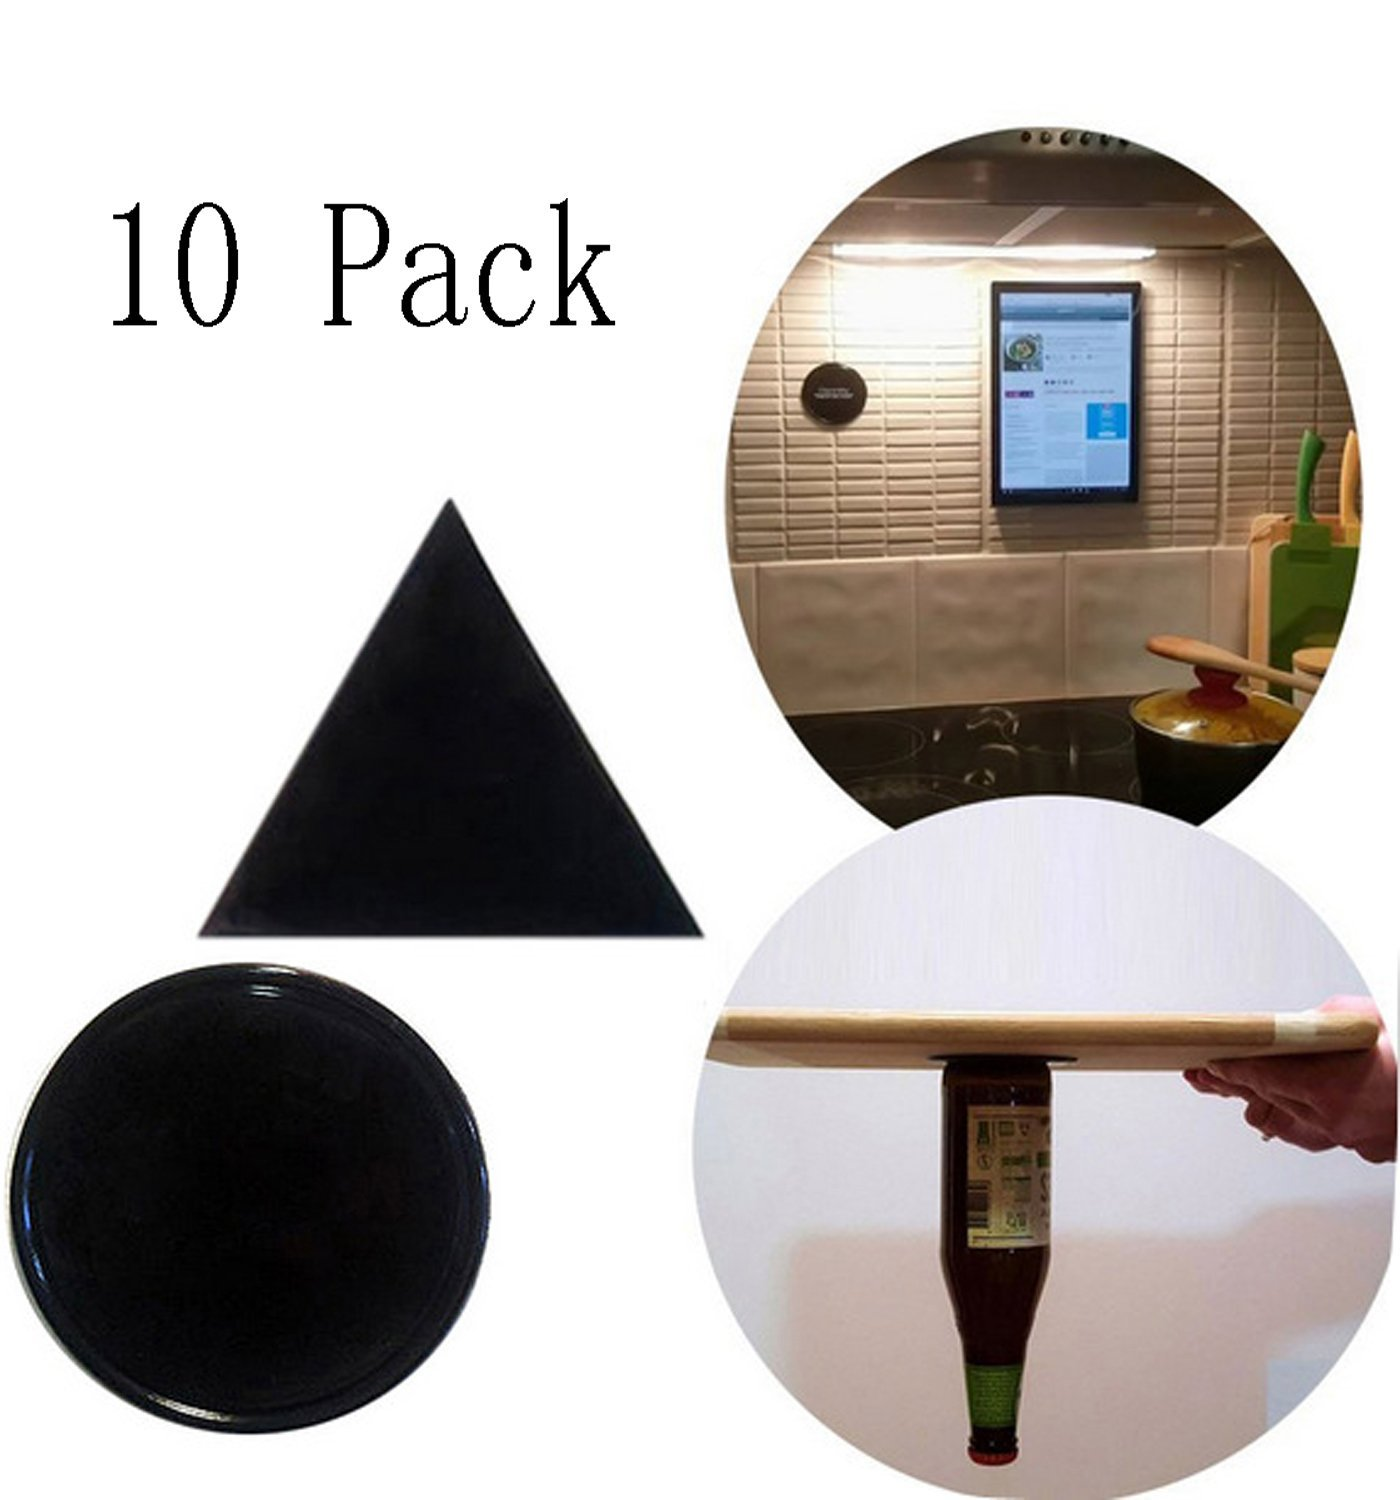 JOKHOO Sticky GeL Pads, Anti-Slip Fixate Gel Pads, can Stick to Metal, Kitchen Cabinets Glass, Mirrors, Whiteboards or Tile, Car GPS, Reusable, Washable, Durable(5 Round + 5 Triangle) (Black)